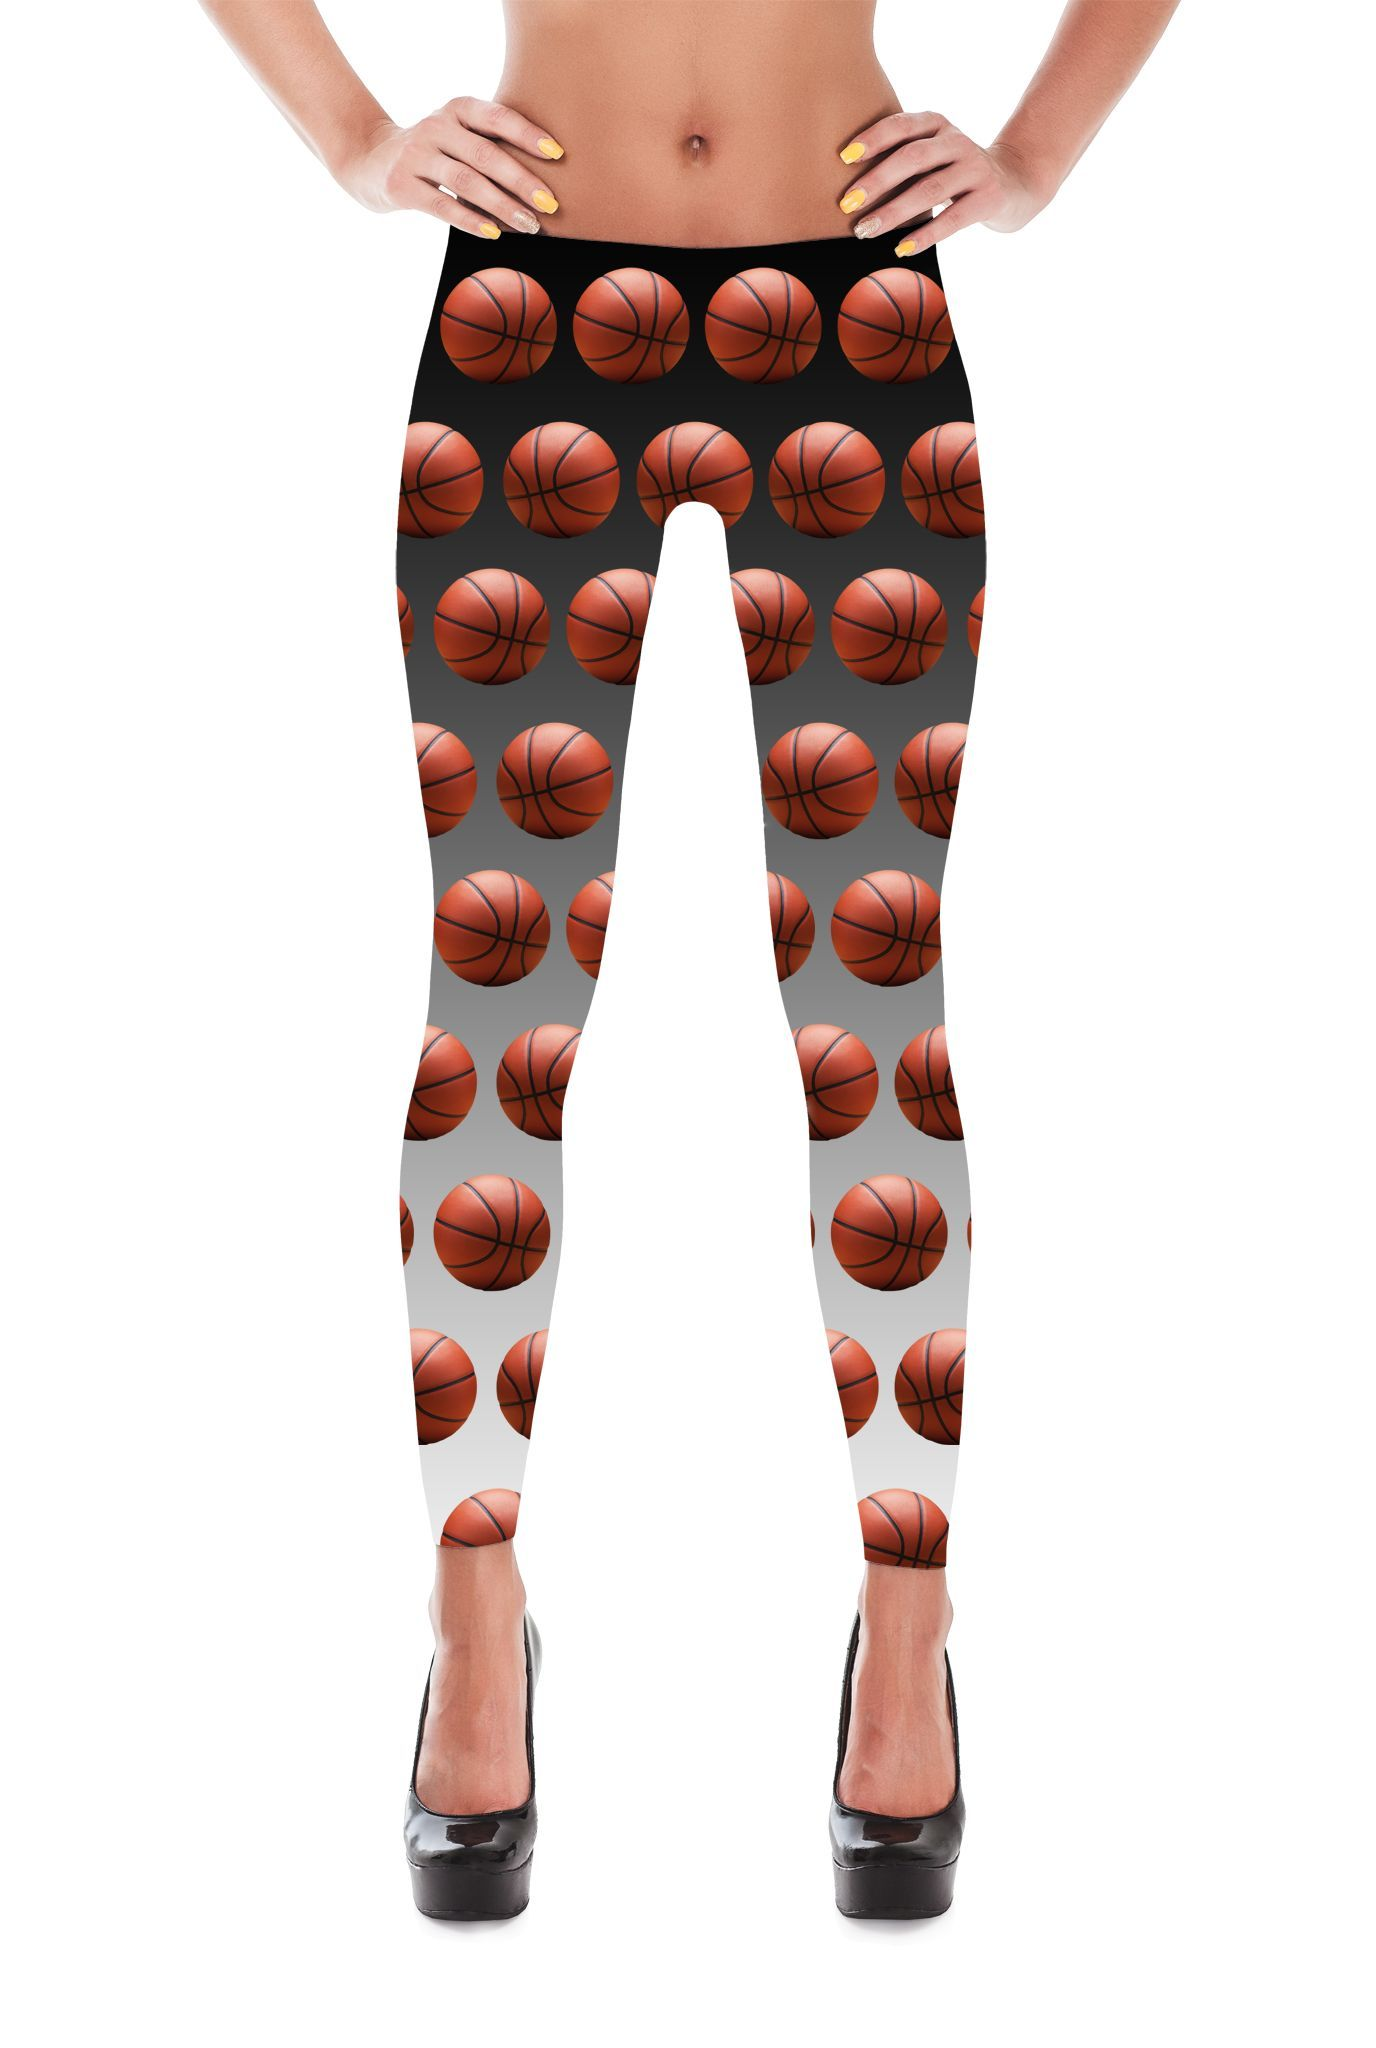 Basketball Leggings - Basketball print Leggings - Basketball Costume - Sport Leggings - NBL leggings